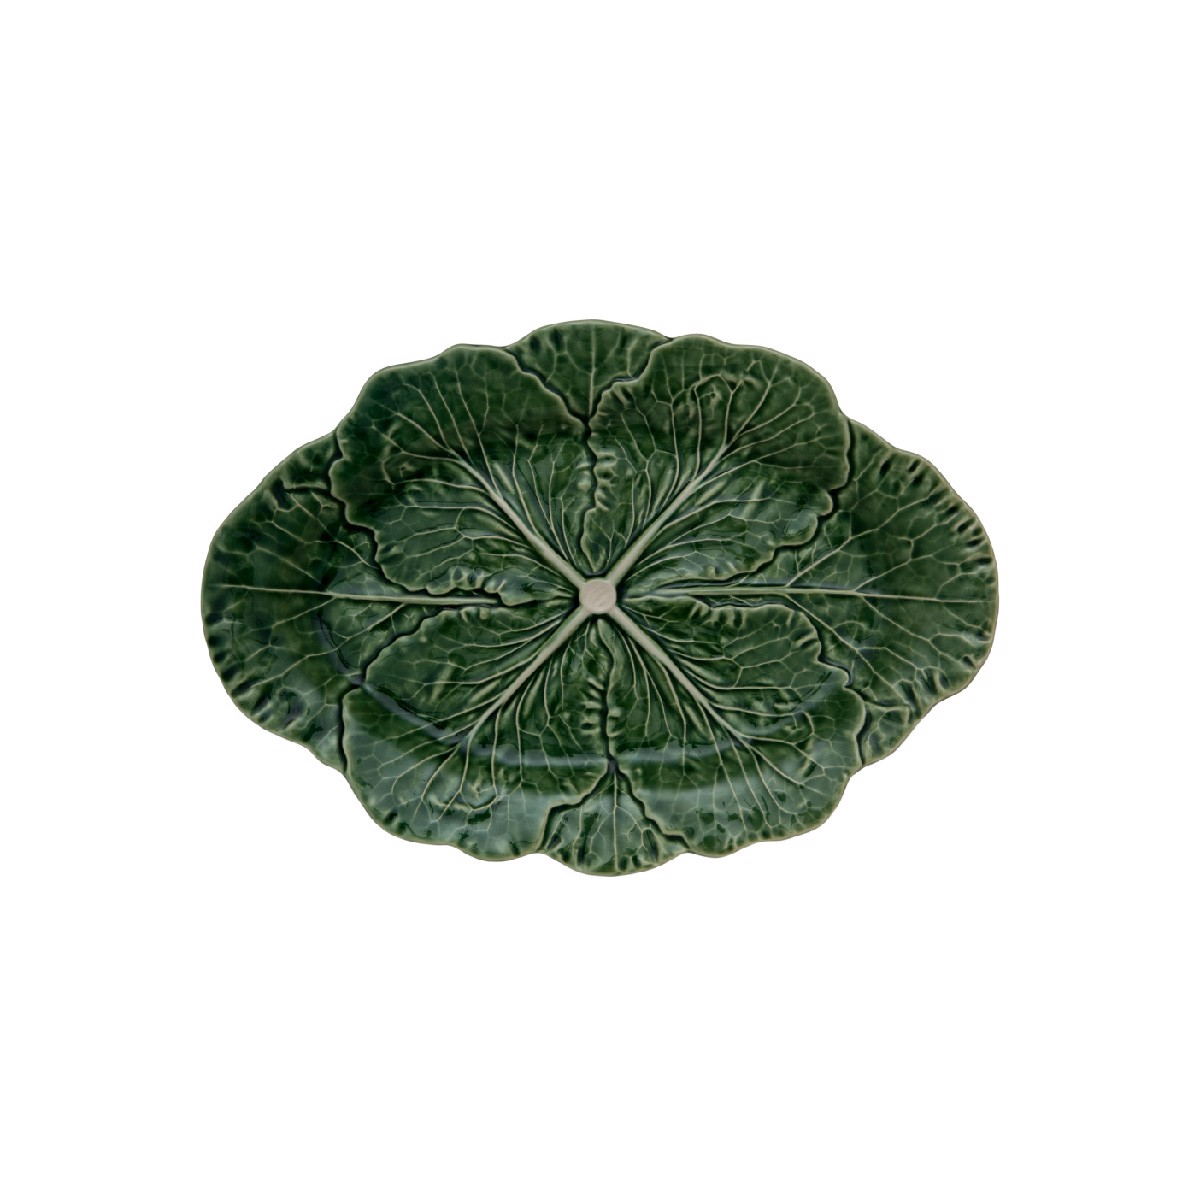 Bordallo - Leaves - Double leaf (blue bird) - 22cm